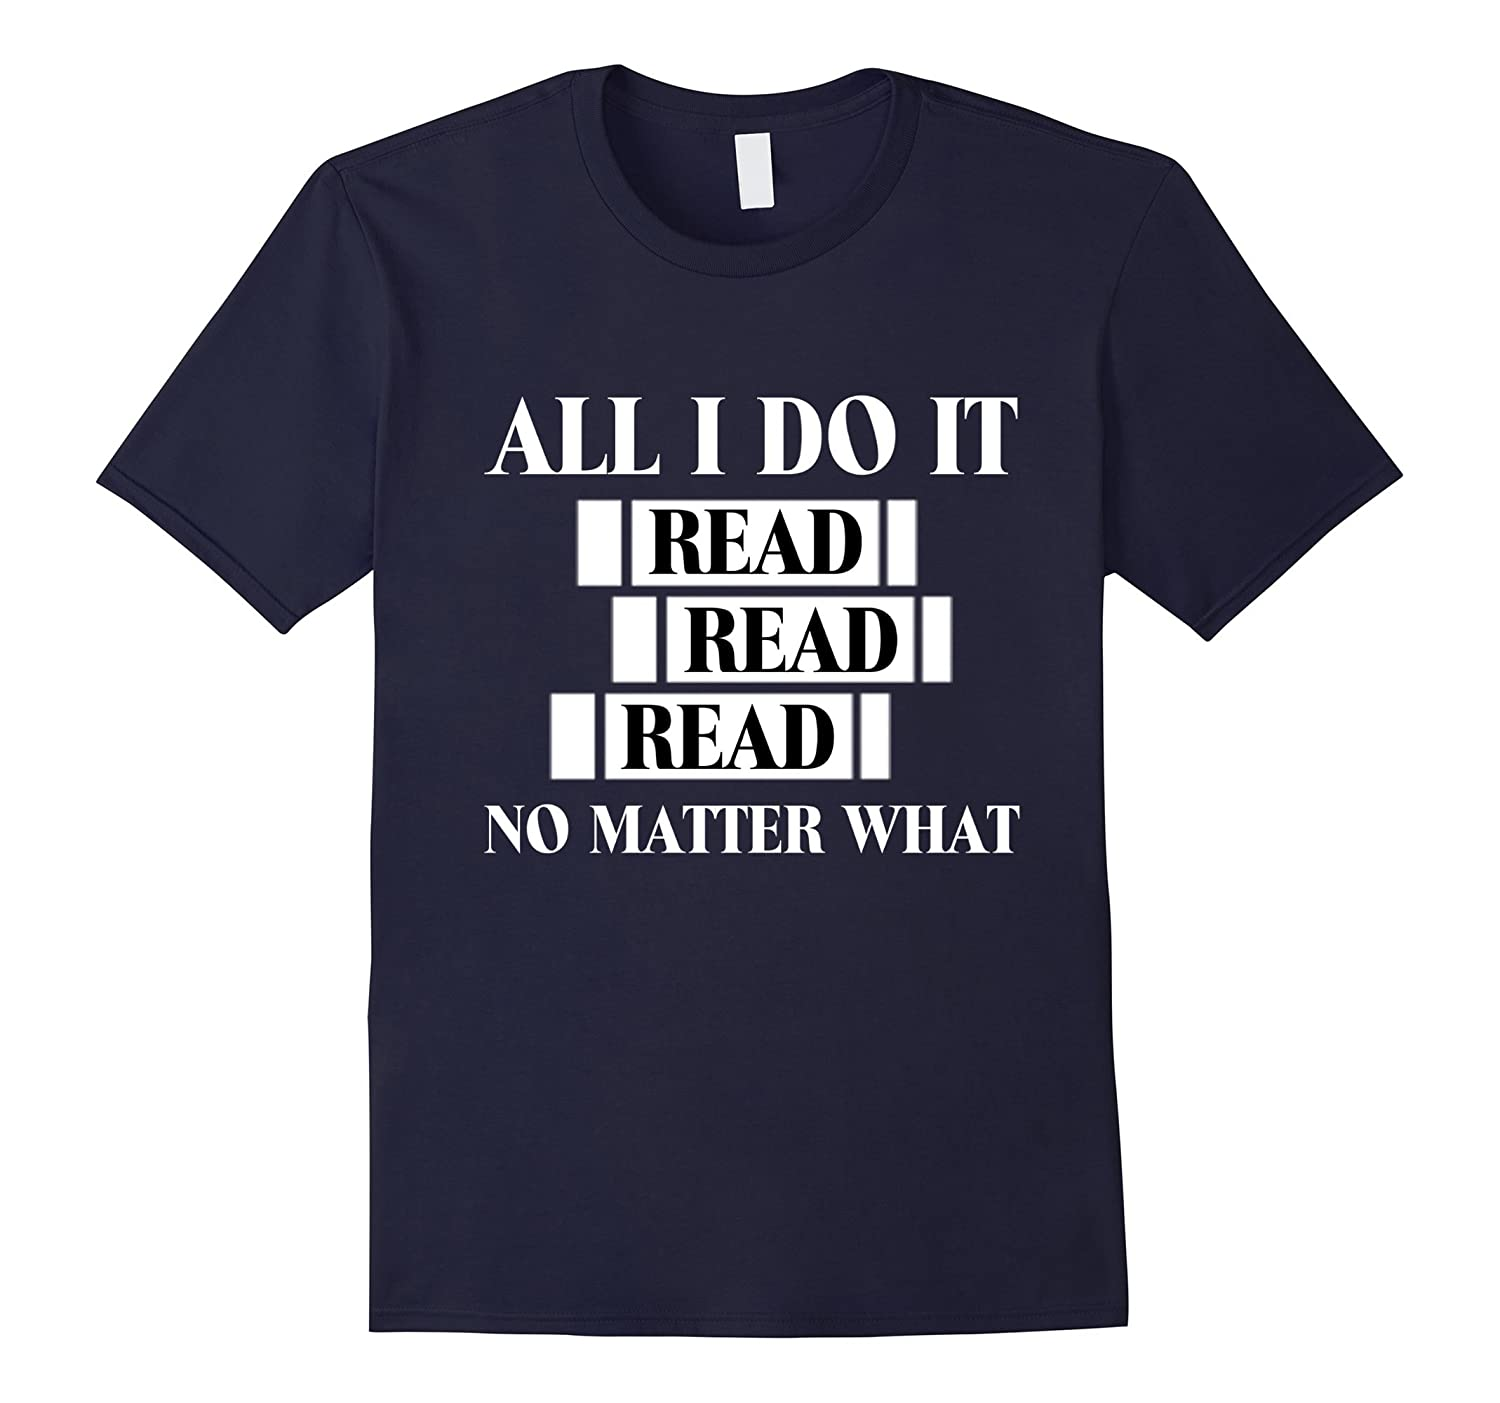 All I Do Is Read Read Read No Matter What t shirt-CL